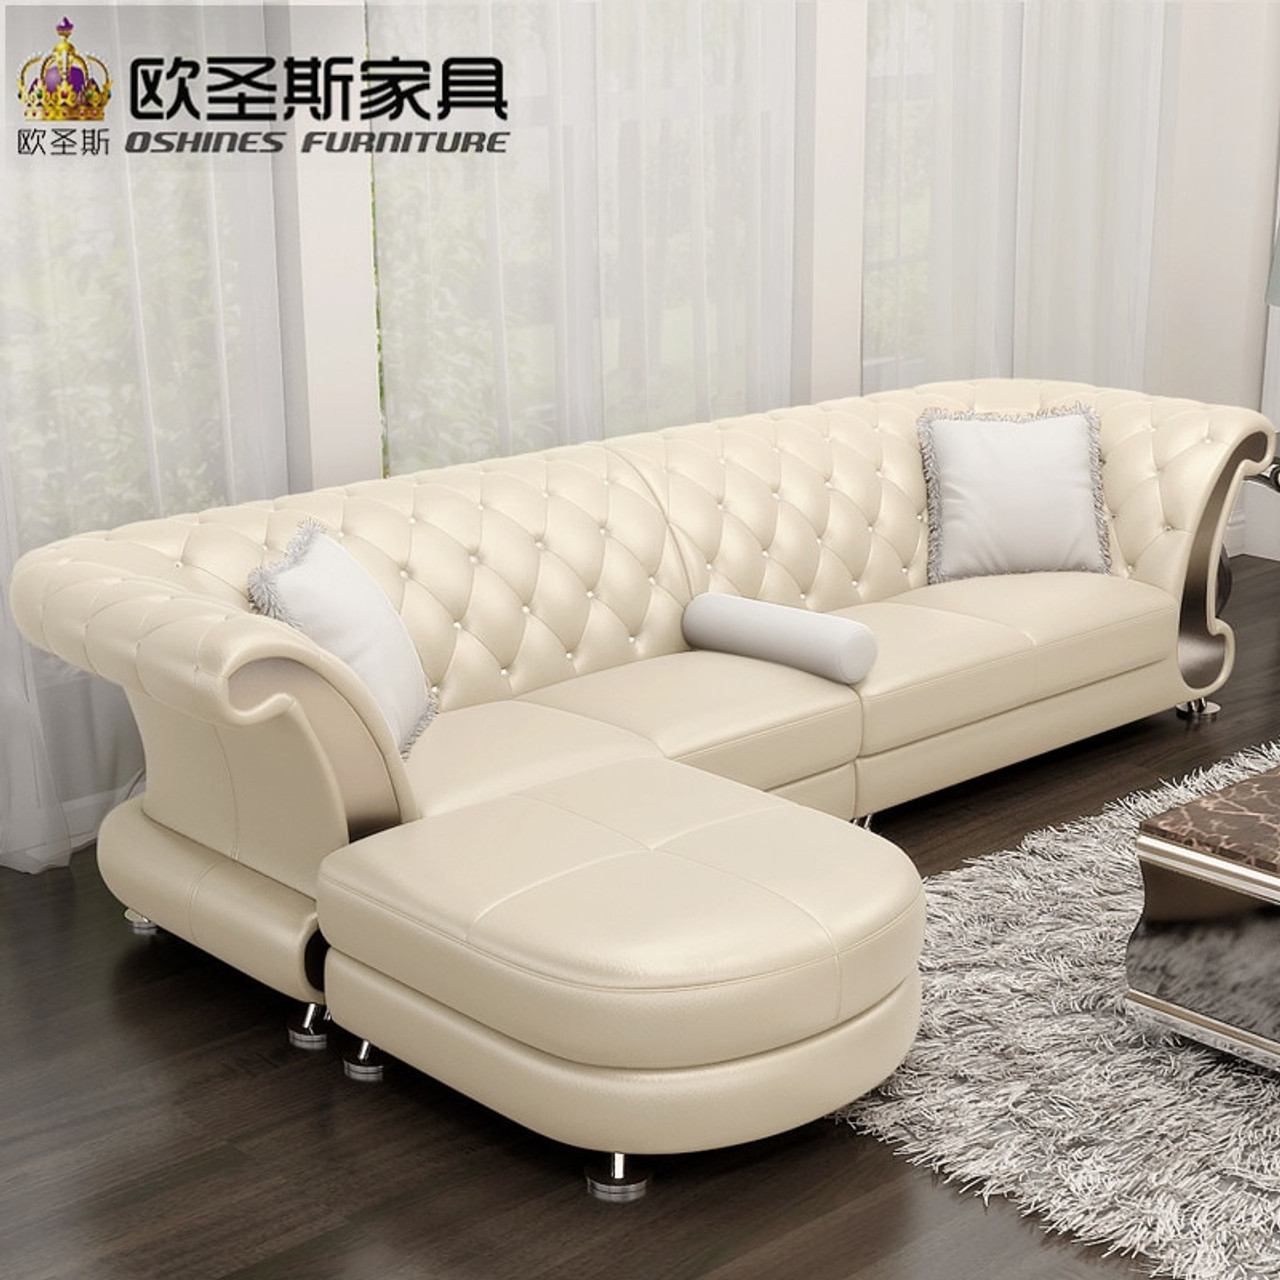 l shaped post modern italy genuine real leather sectional latest corner  furniture living room sofa set designs F52